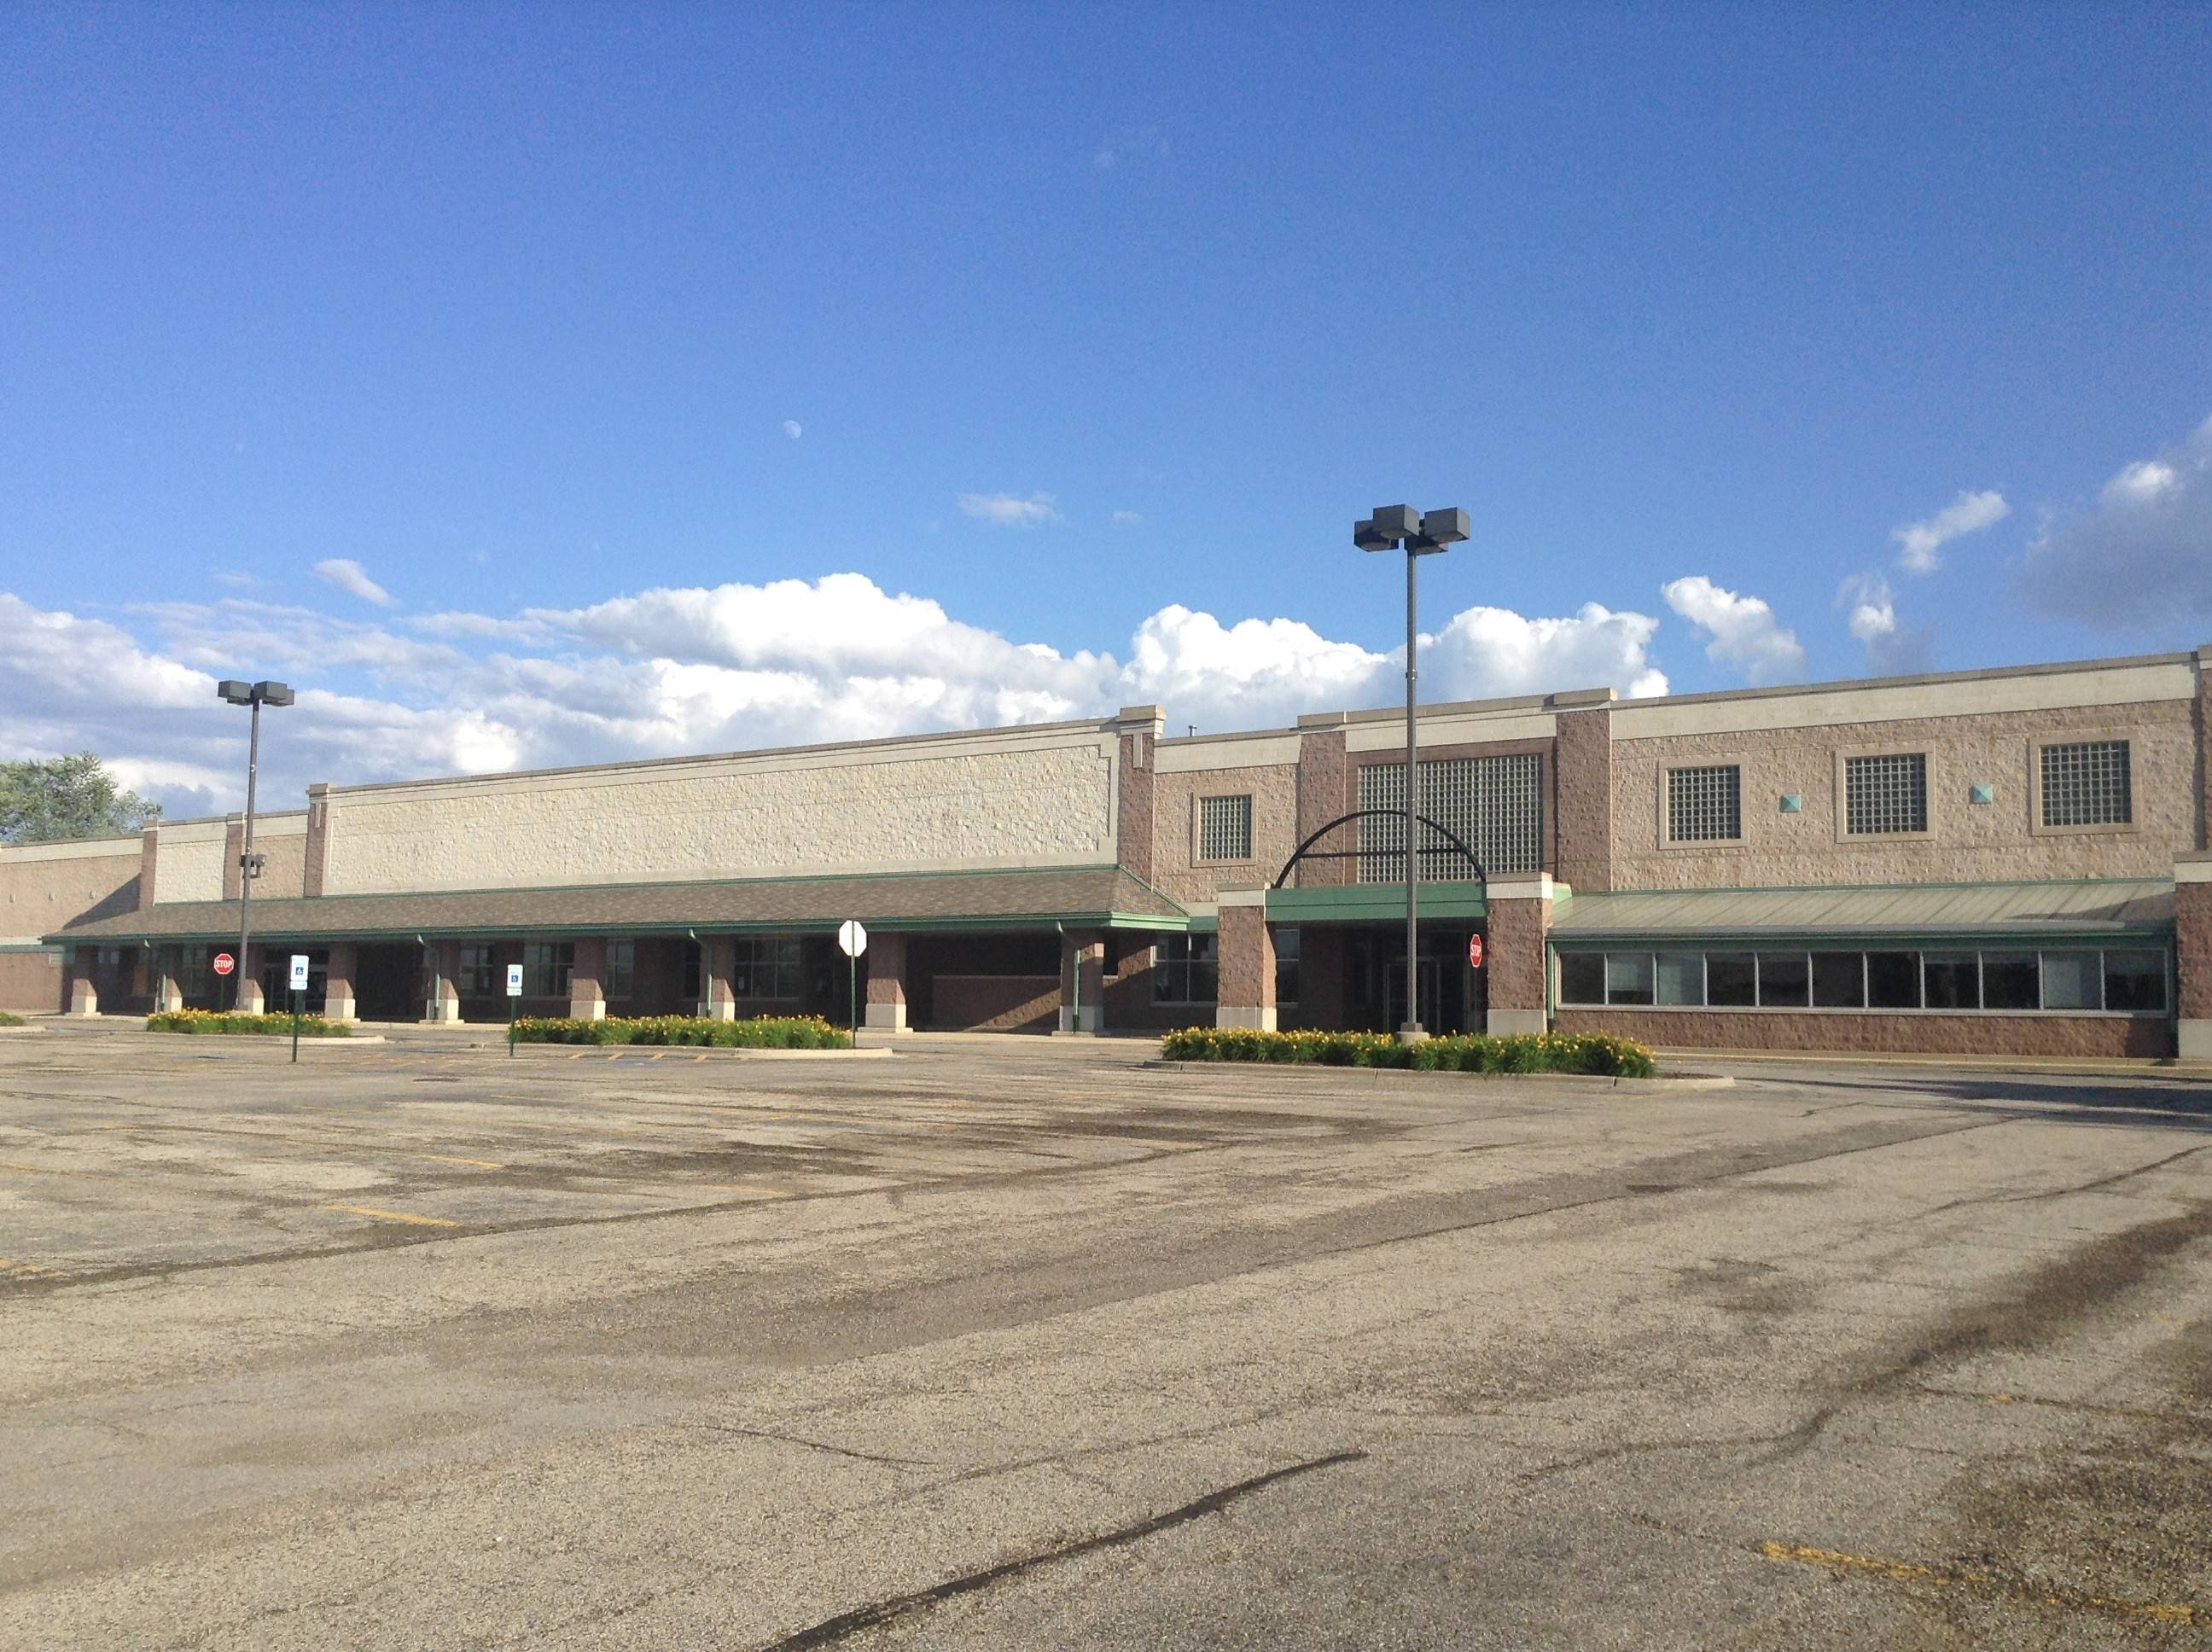 Developers Want To Open A Self Storage Facility On The Site Of A Long